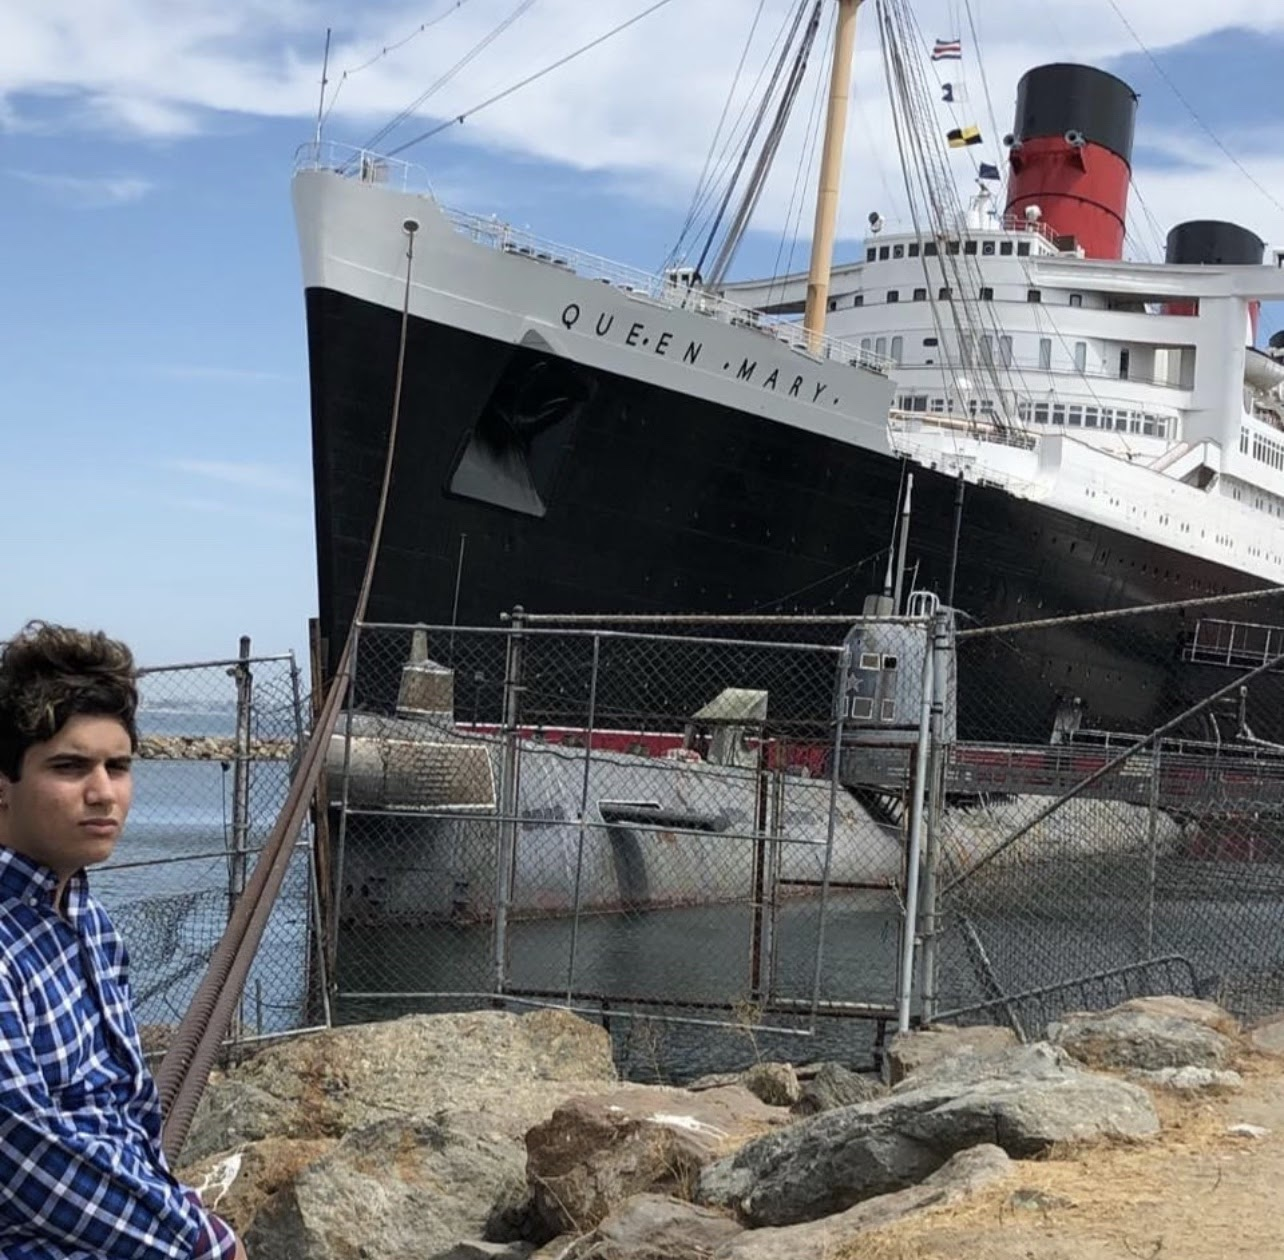 Milad Shafieezad, 19, was one of many people who lost hotel deposits on the Queen Mary in the bankruptcy. Photo from Shafieezad.